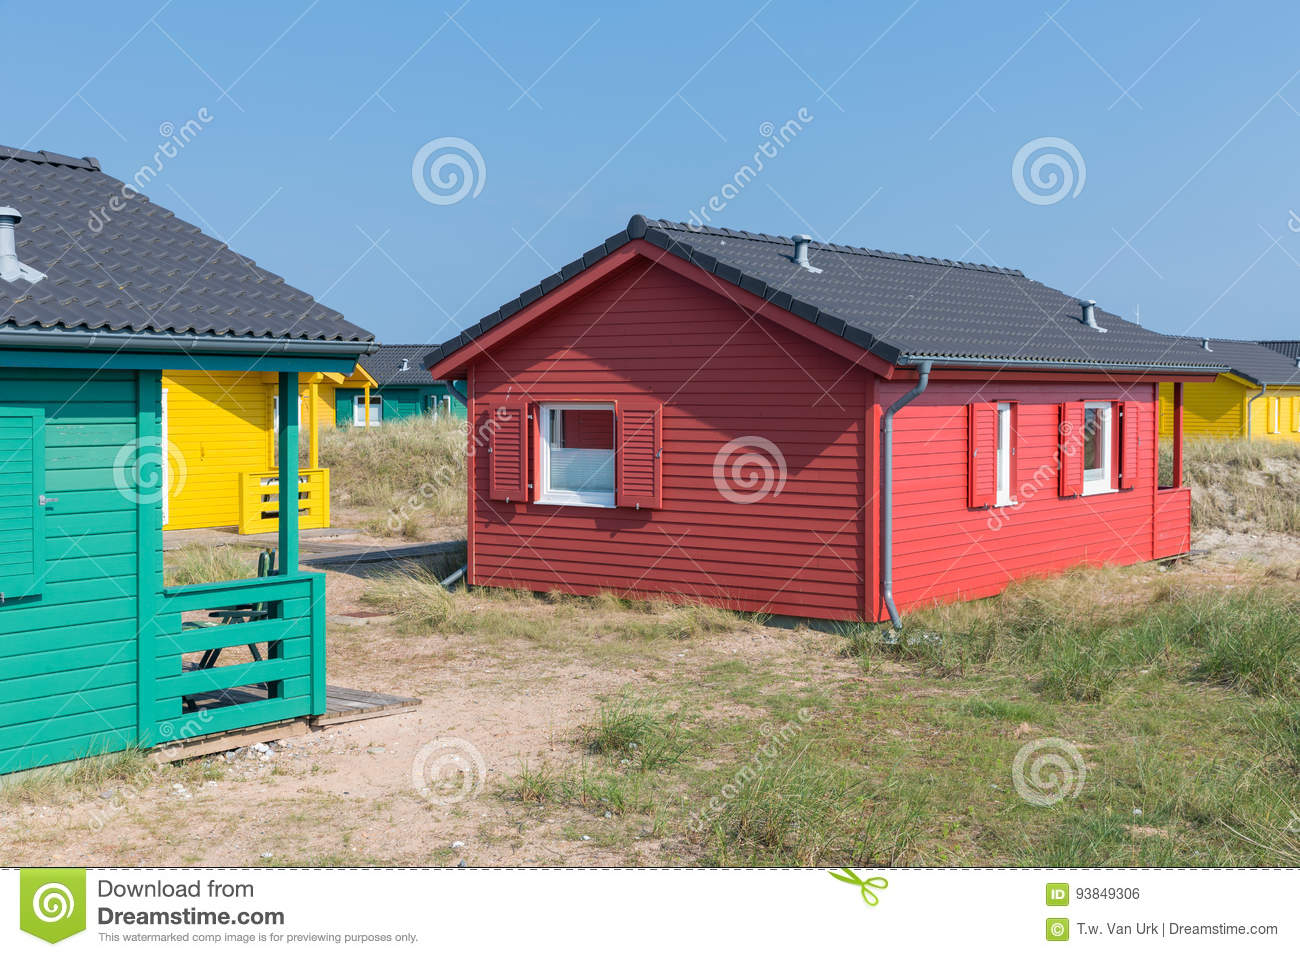 Beach houses at Dune, German island near Helgoland